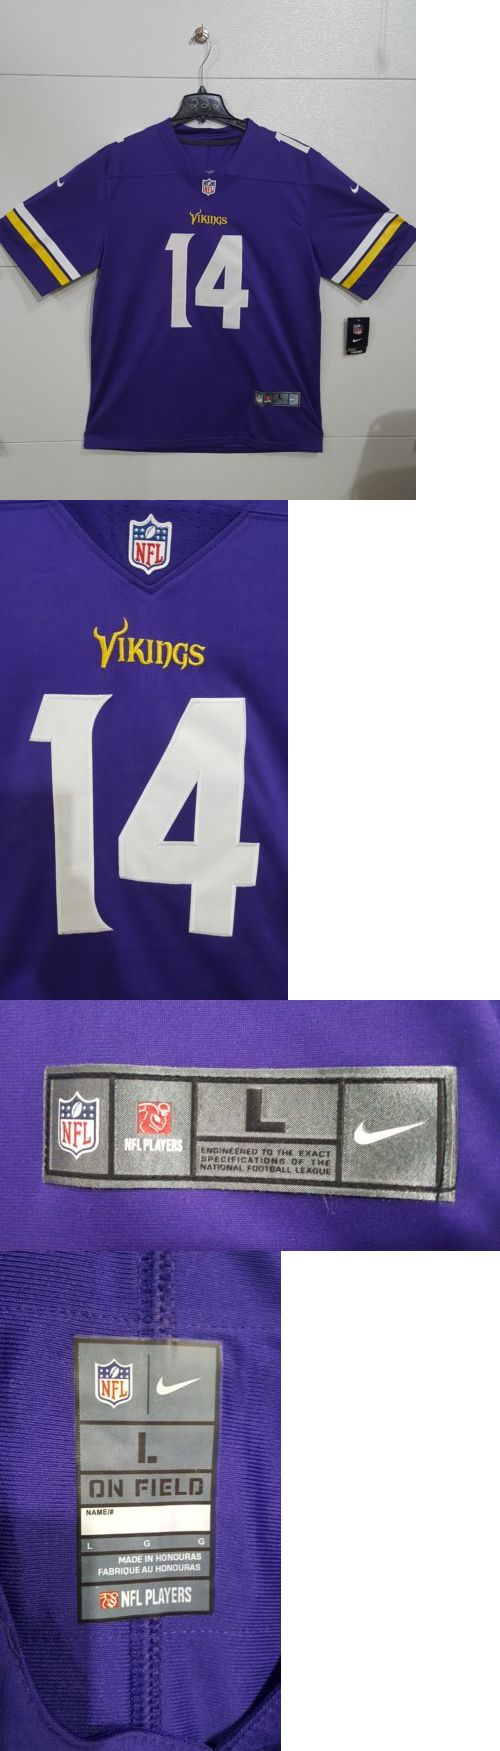 1005c1856 Clothing 21218  Minnesota Vikings Stefon Diggs No. 14 Home Purple Game  Jersey Large -  BUY IT NOW ONLY   29.95 on eBay!